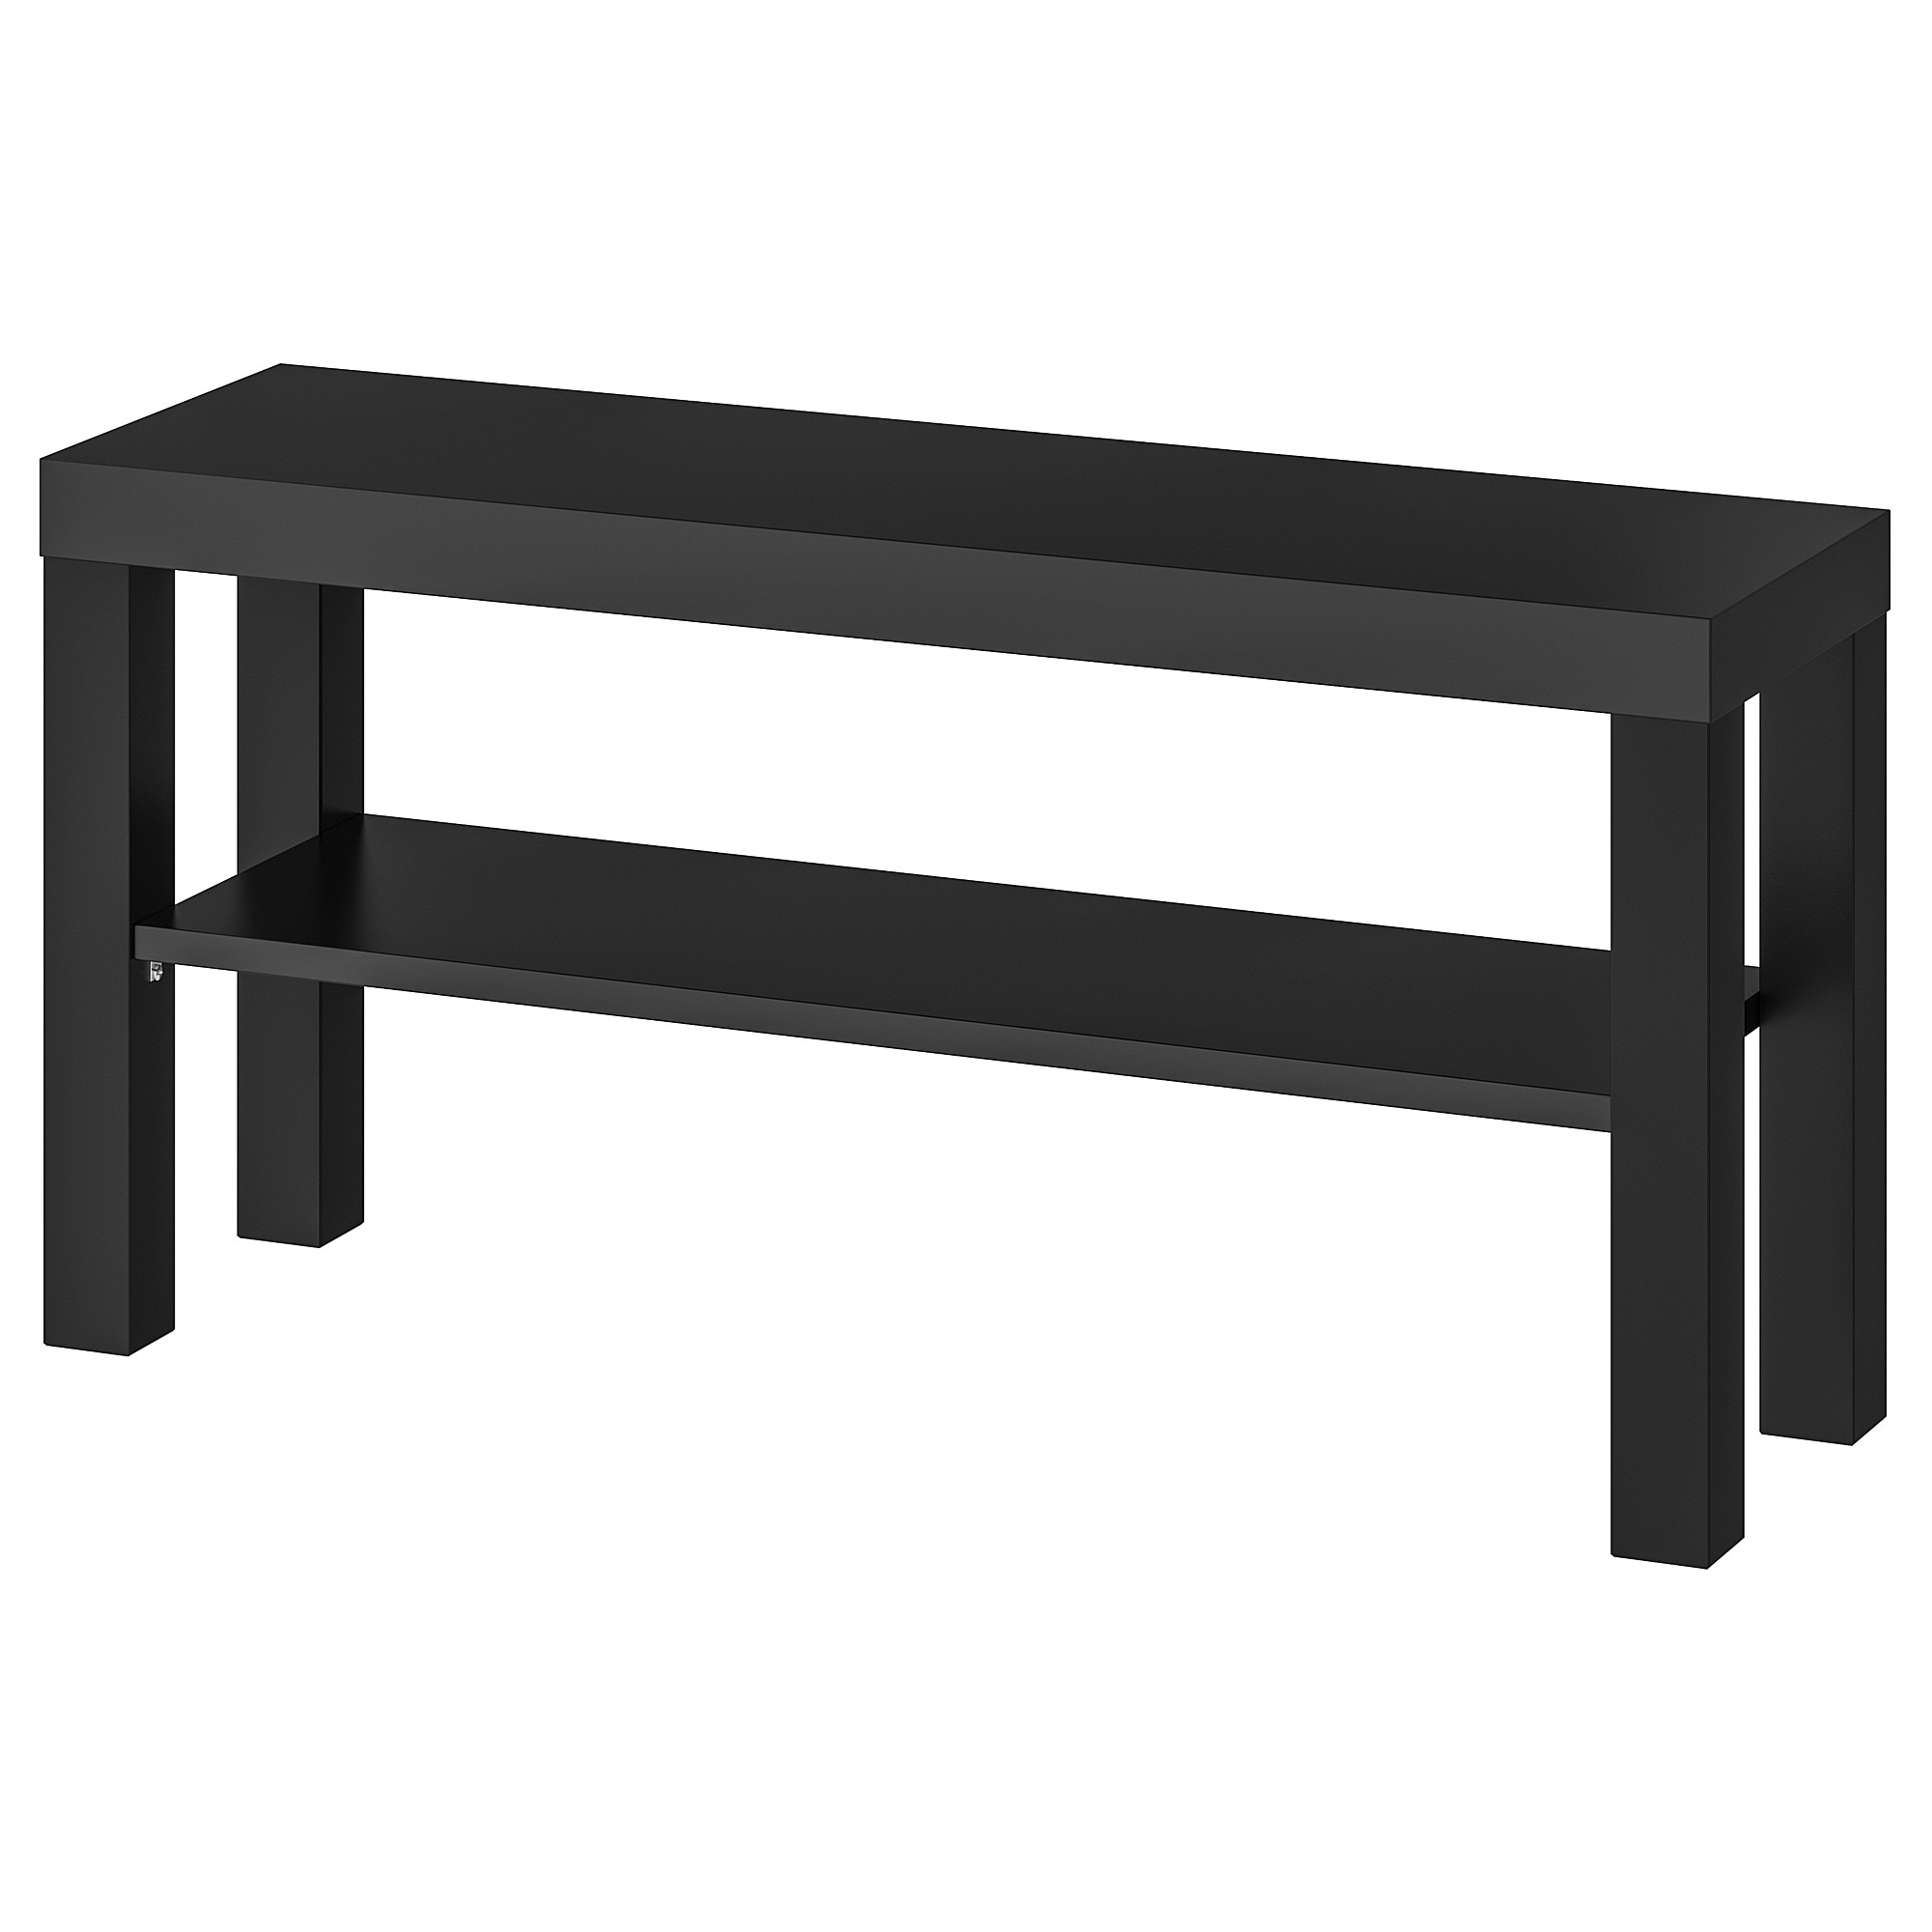 "LACK TV bench, black, 35 3/8x10 1/4x17 3/4 "" (90x26x45 cm)"